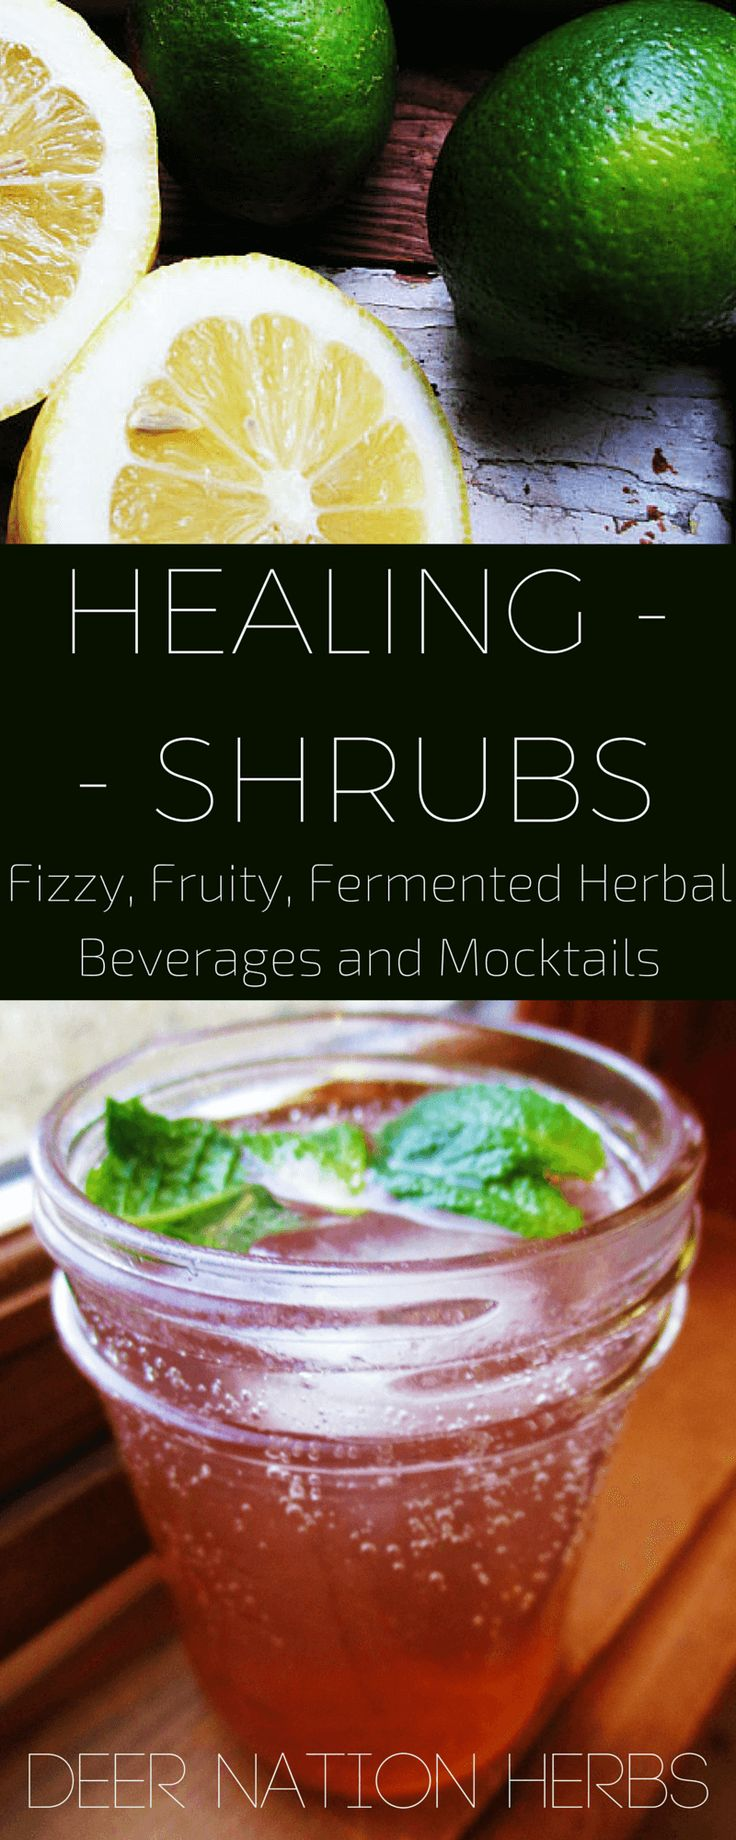 Fermented shrubs and mocktails are naturally healthy, and a wonderful medium for herbs! Learn how to make mocktails into healing herbal preparations that taste great.